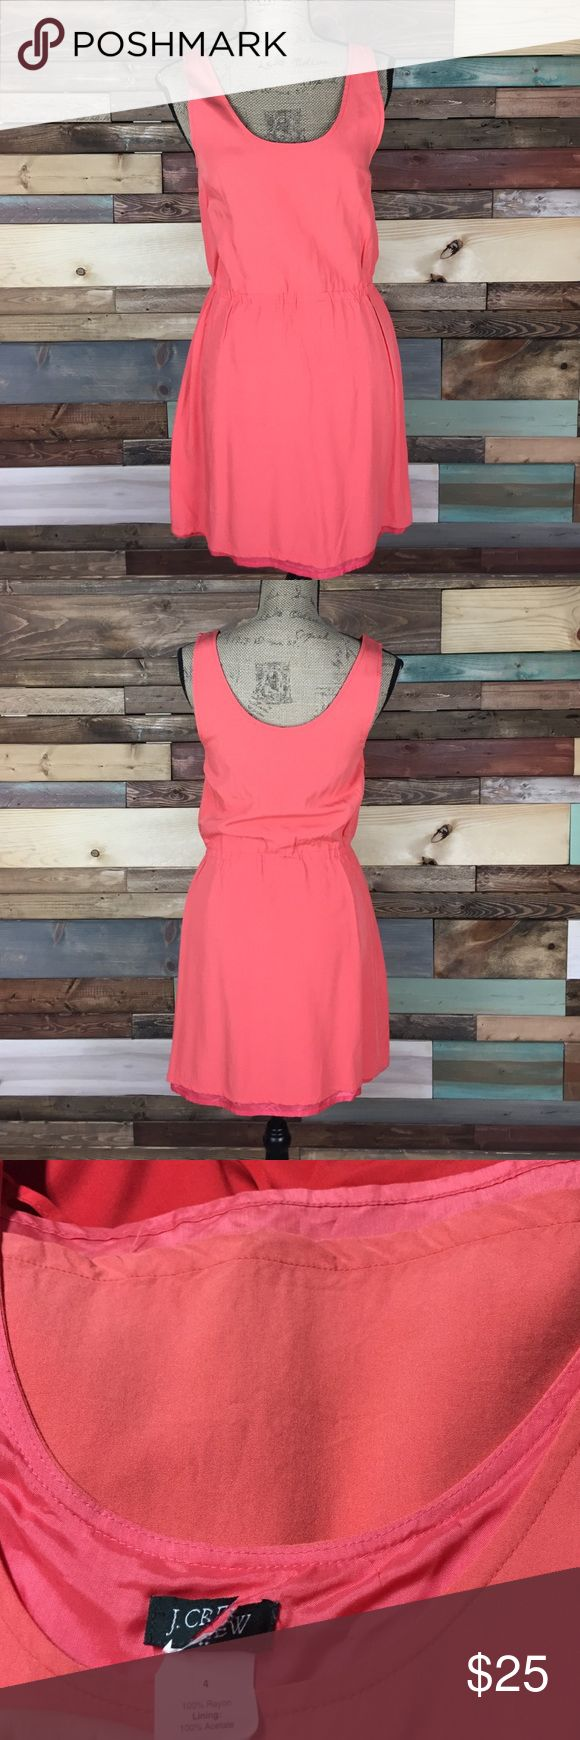 """J. Crew Coral Pink Sundress - 4 J. Crew Coral Pink Sundress - 4 // 100% Rayon, pink under layer is 100% acetate // Bust: 17"""" (laying flat) // Waist: 14""""  (laying flat) // Length: 34"""" J. Crew Dresses"""